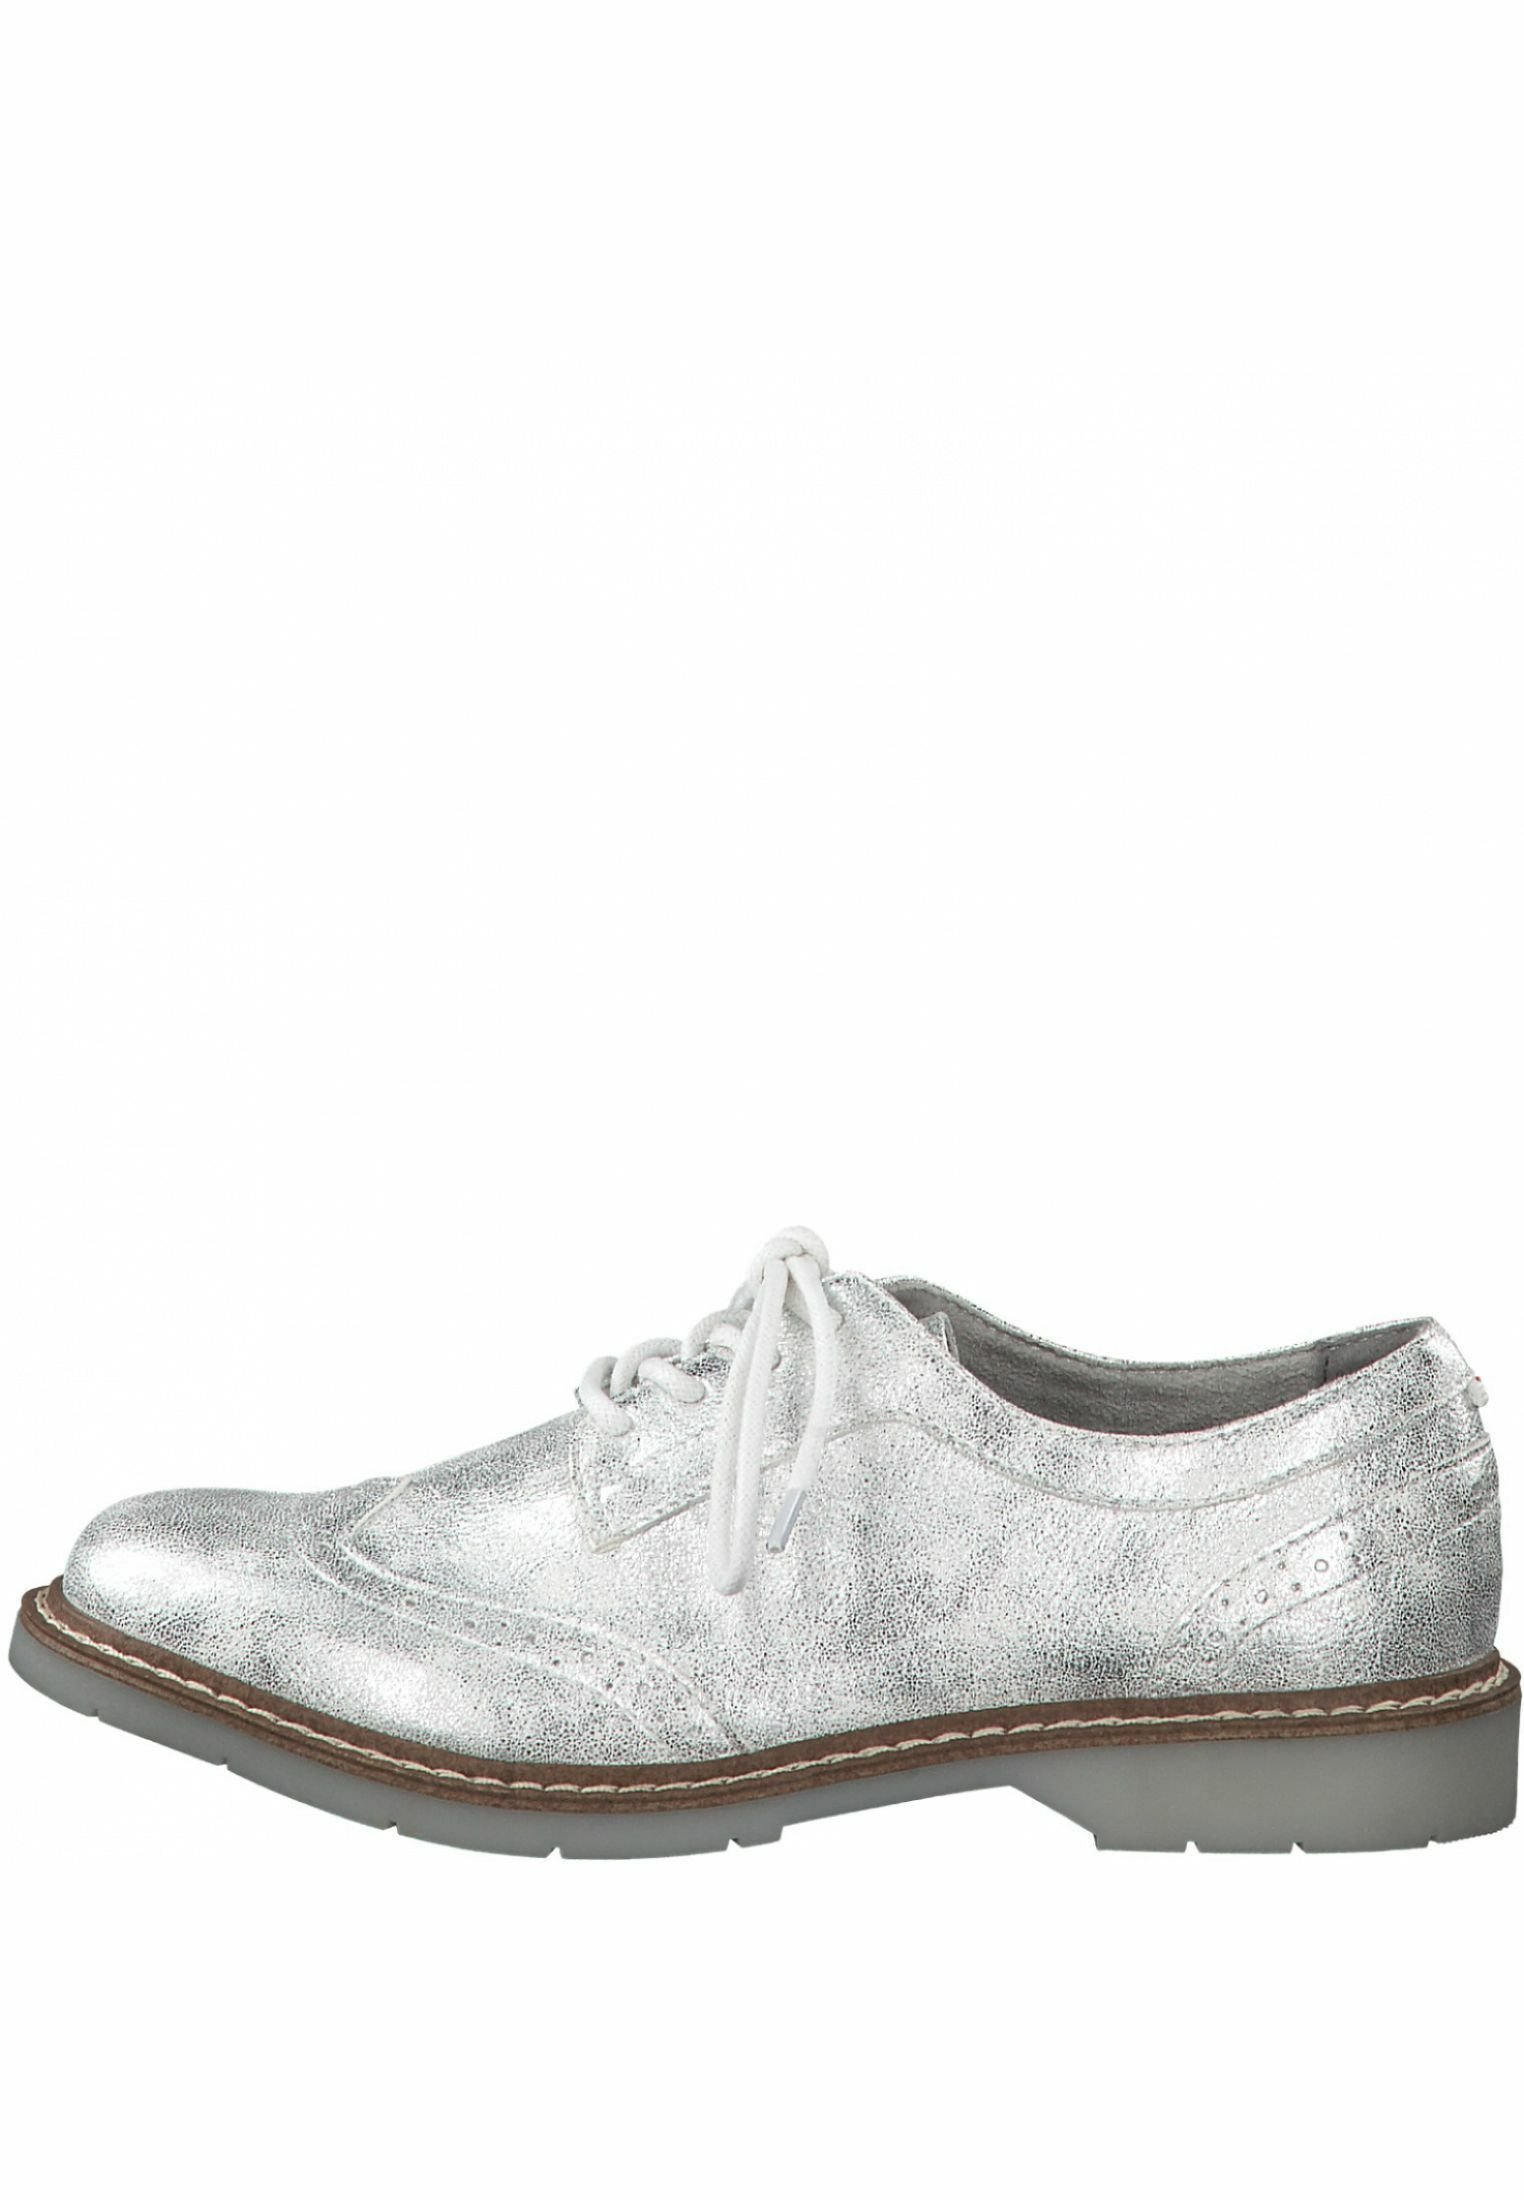 2013 Cheapest s.Oliver Lace-ups - silver | women's shoes 2020 7lJhc